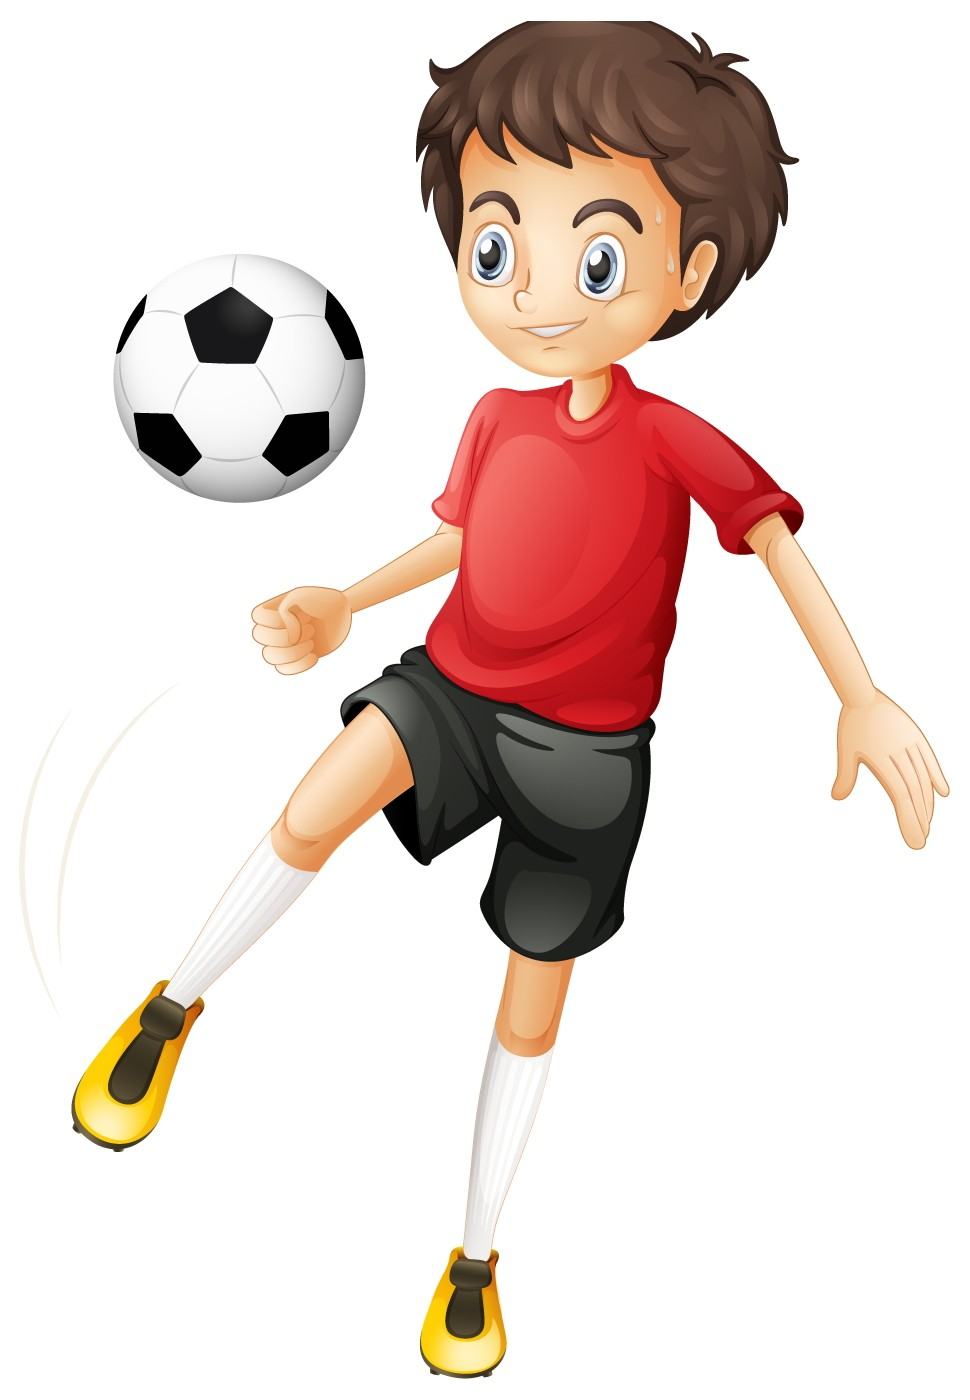 13 Best Cartoon soccer players images | Football players ...